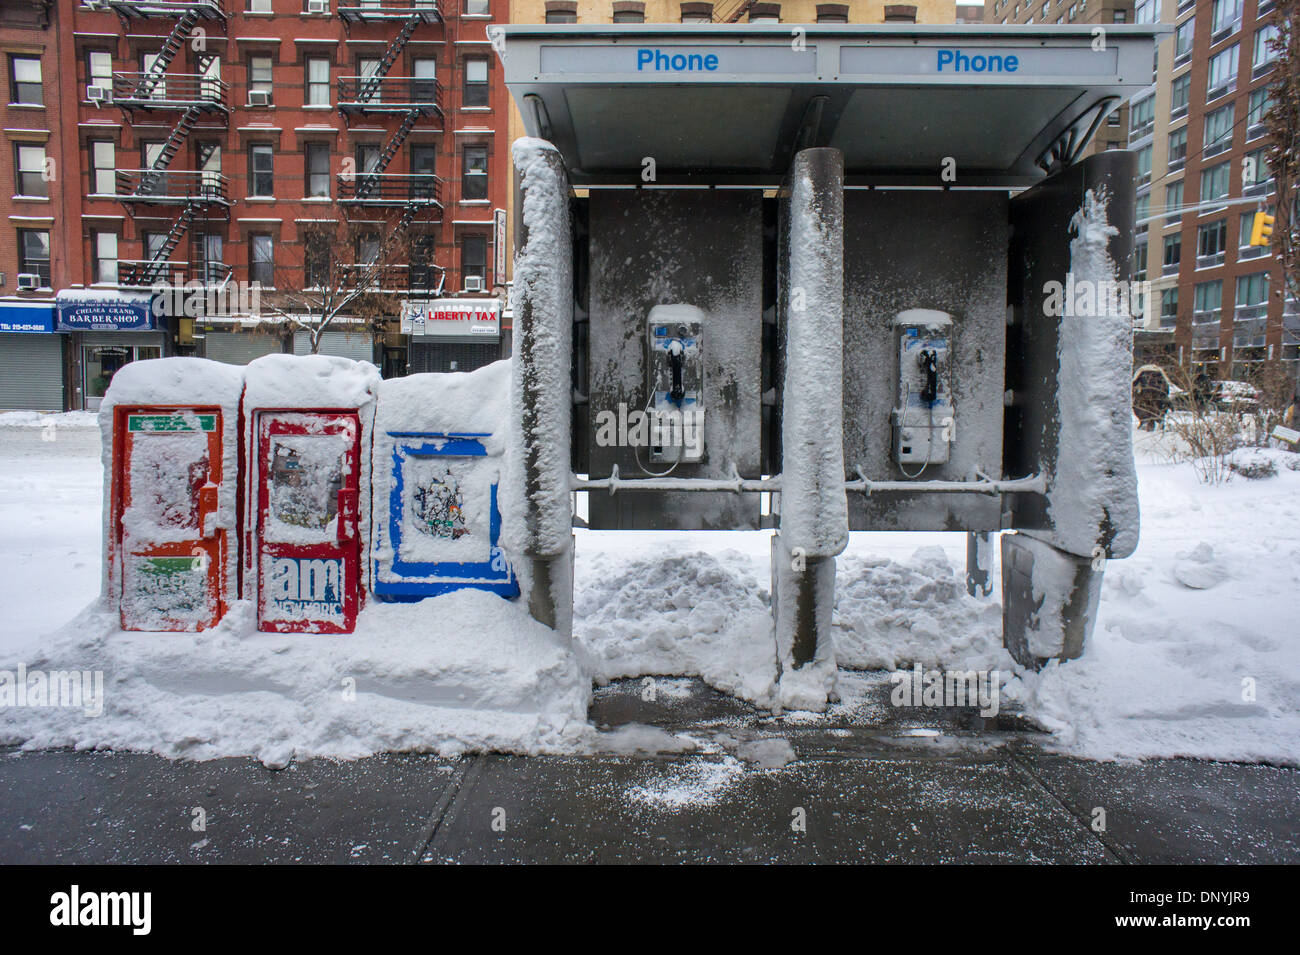 Newspaper boxes and a telephone kiosk covered with snow in the Chelsea neighborhood of New York - Stock Image